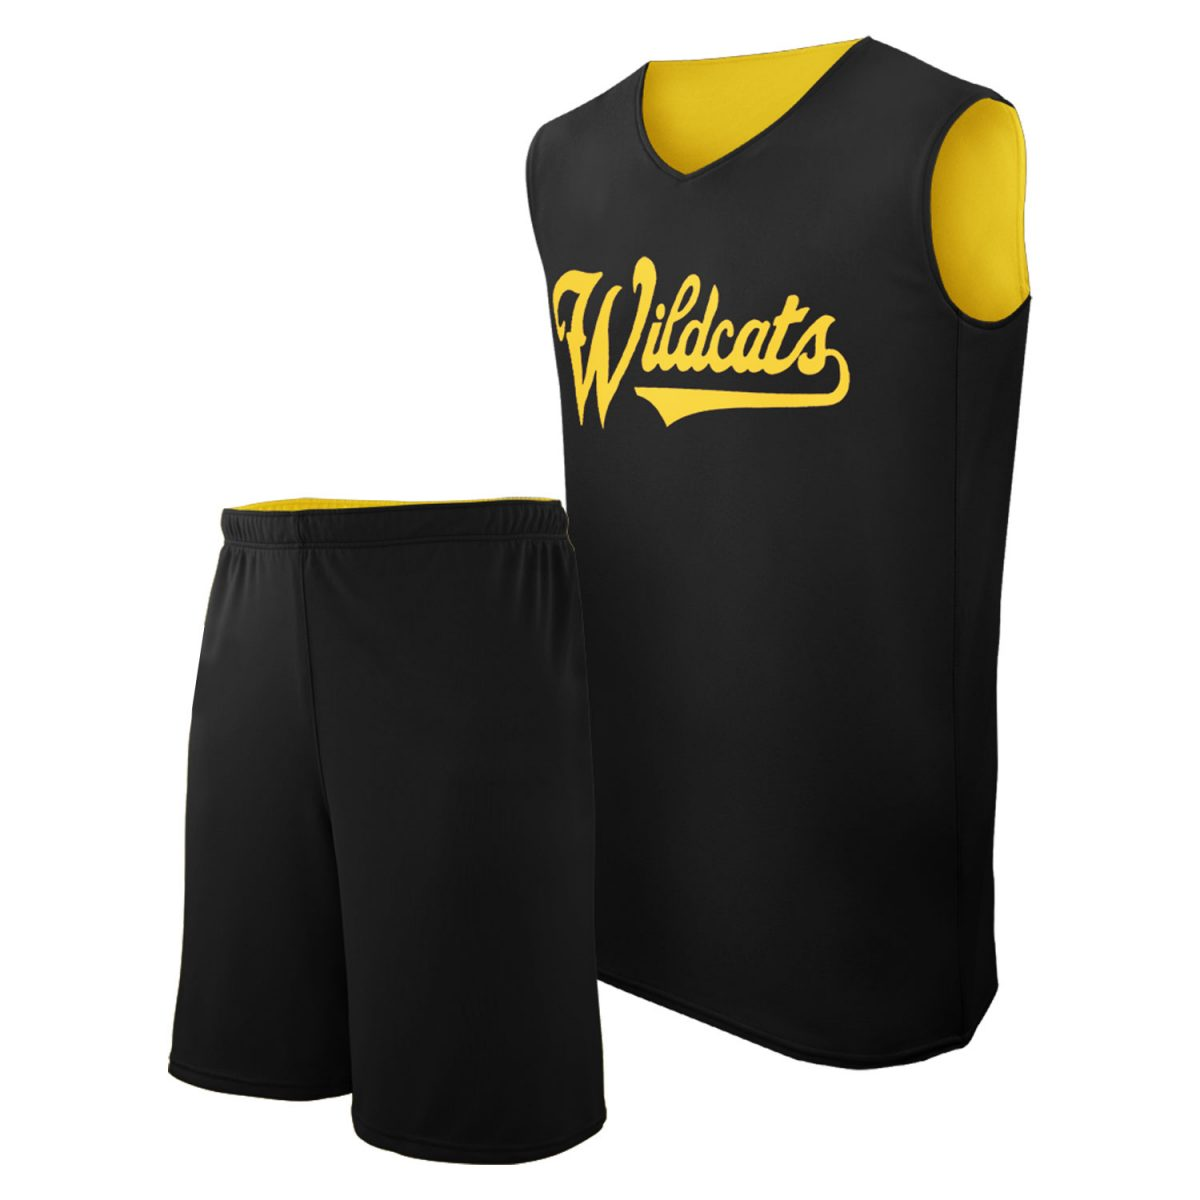 Boys Basketball Uniforms Manufacturers in Raipur